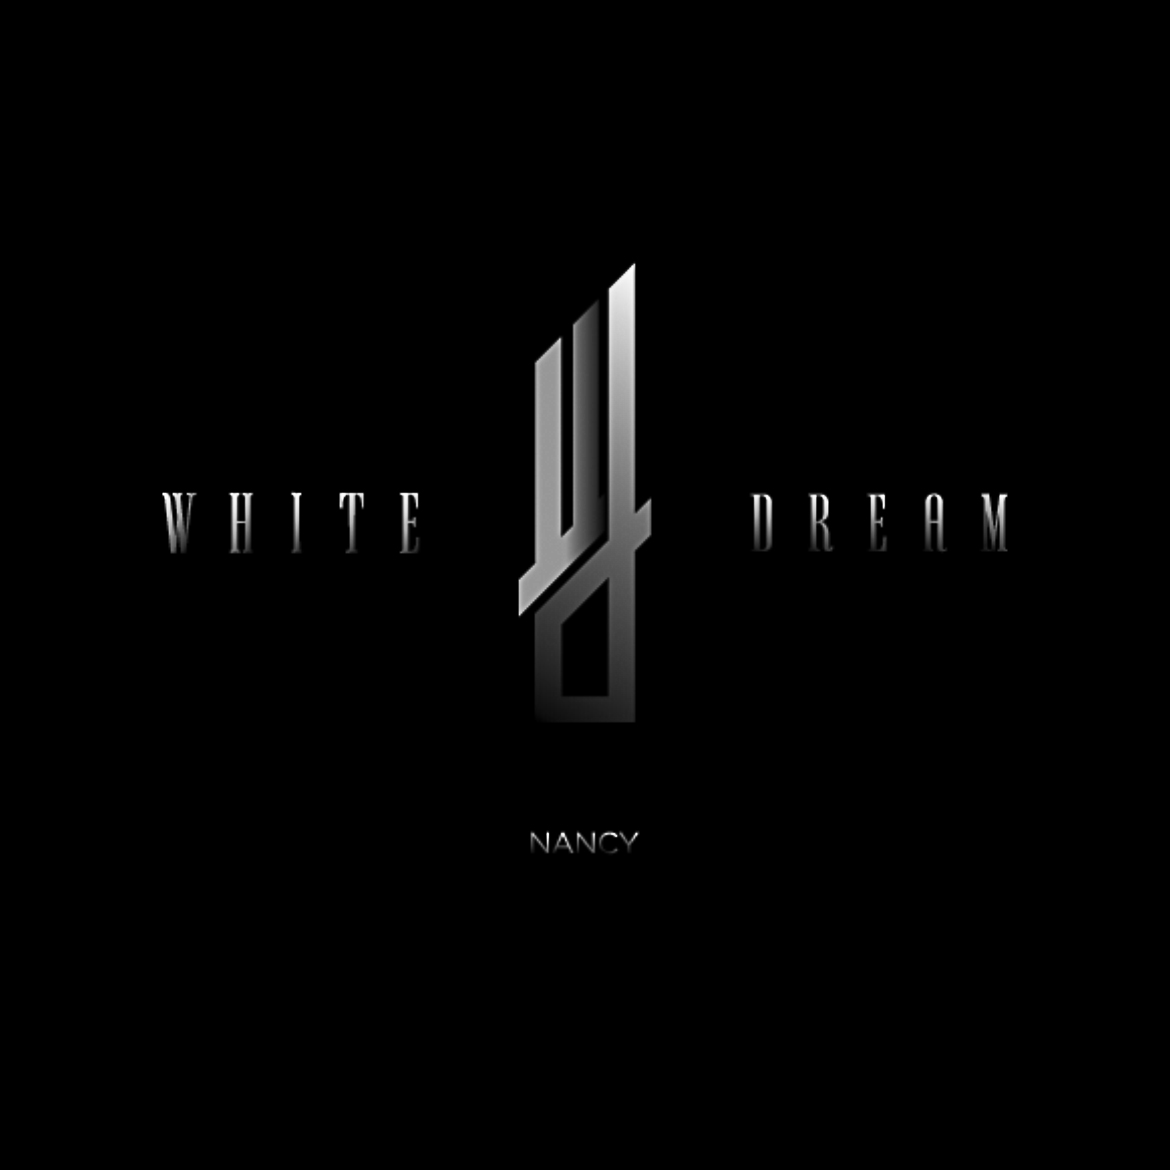 white dream logo